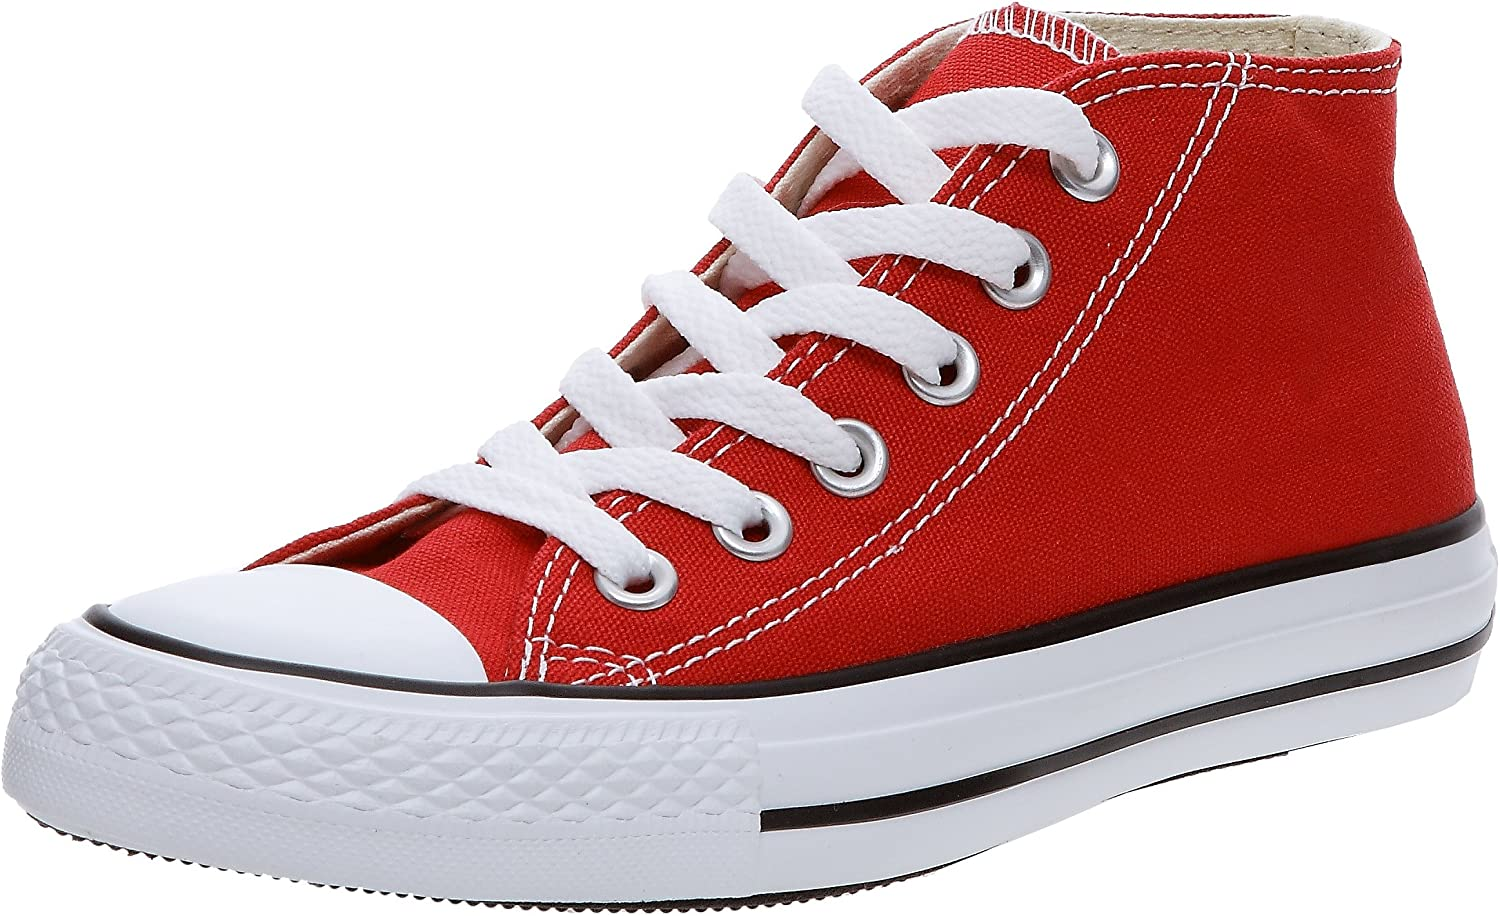 Converse CT Hus Bas Mid Unisex Trainers